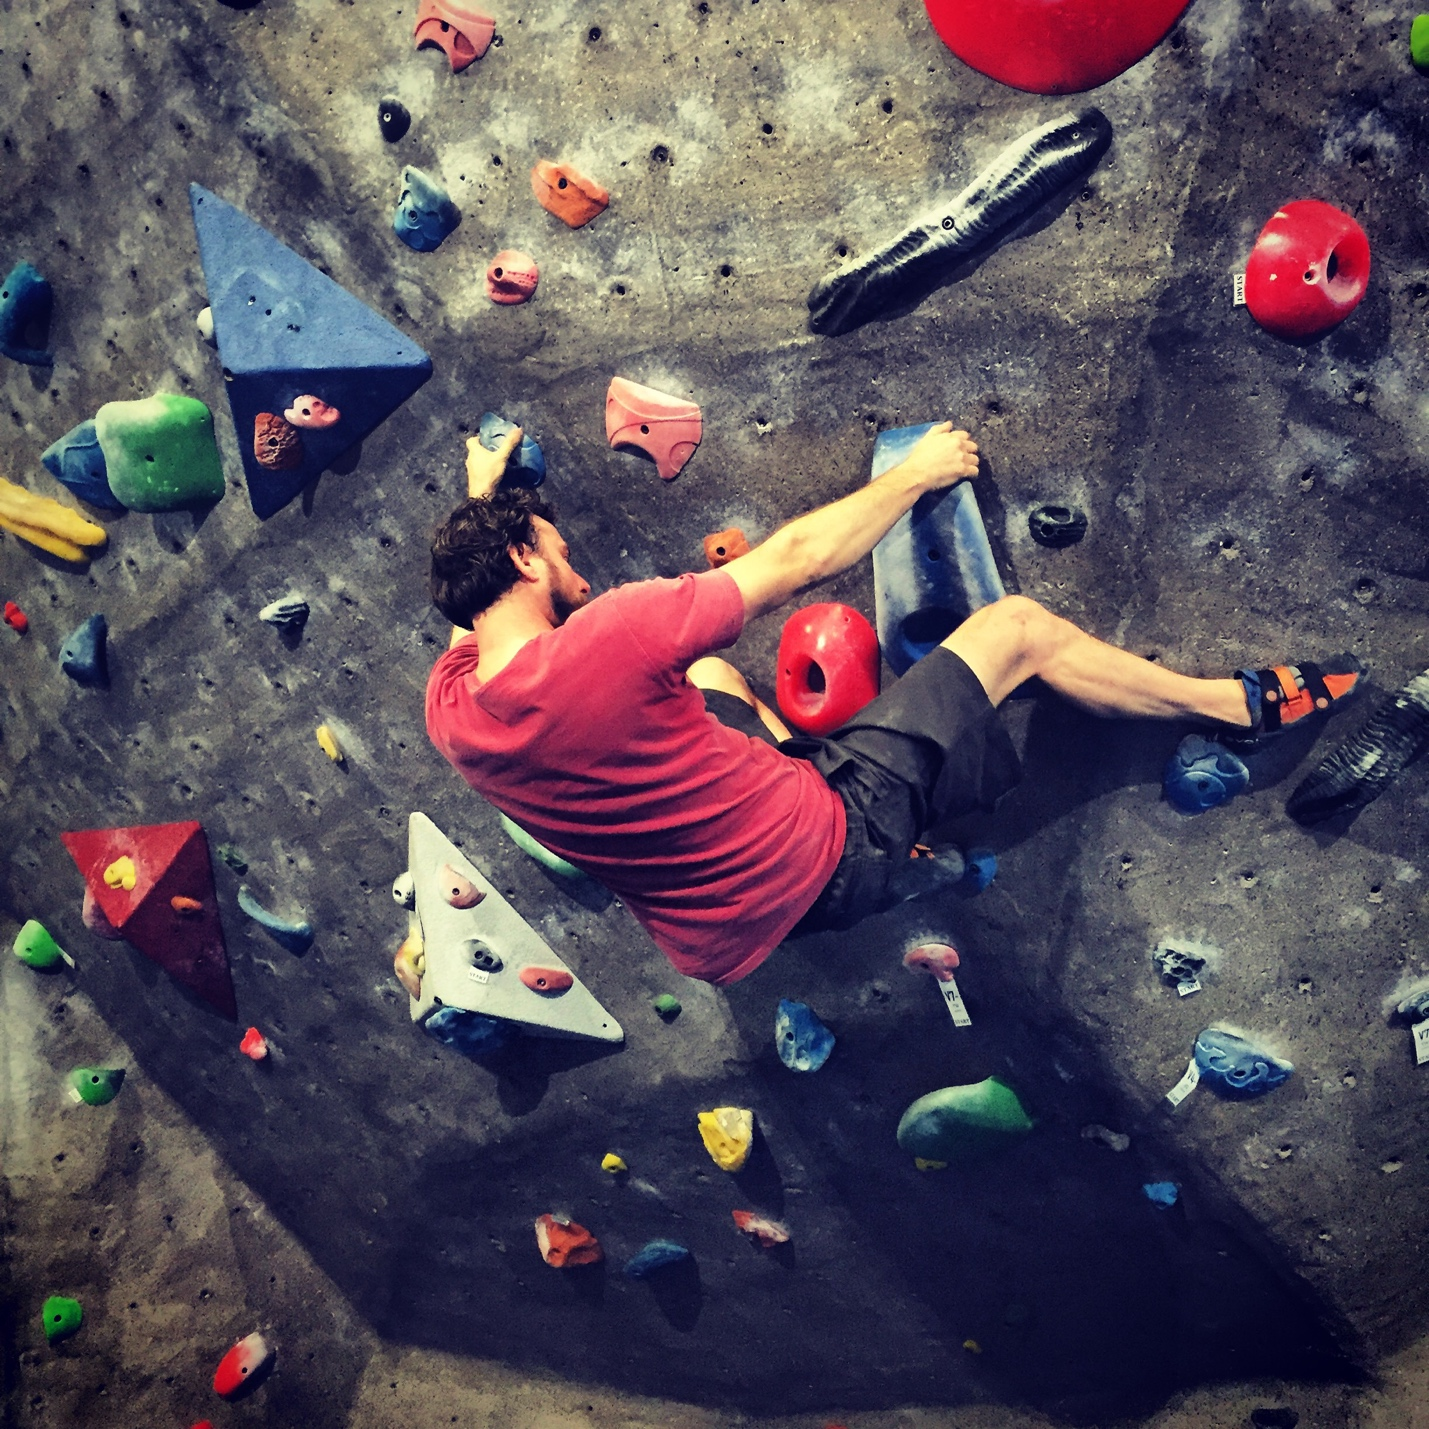 Male Climber Bouldering